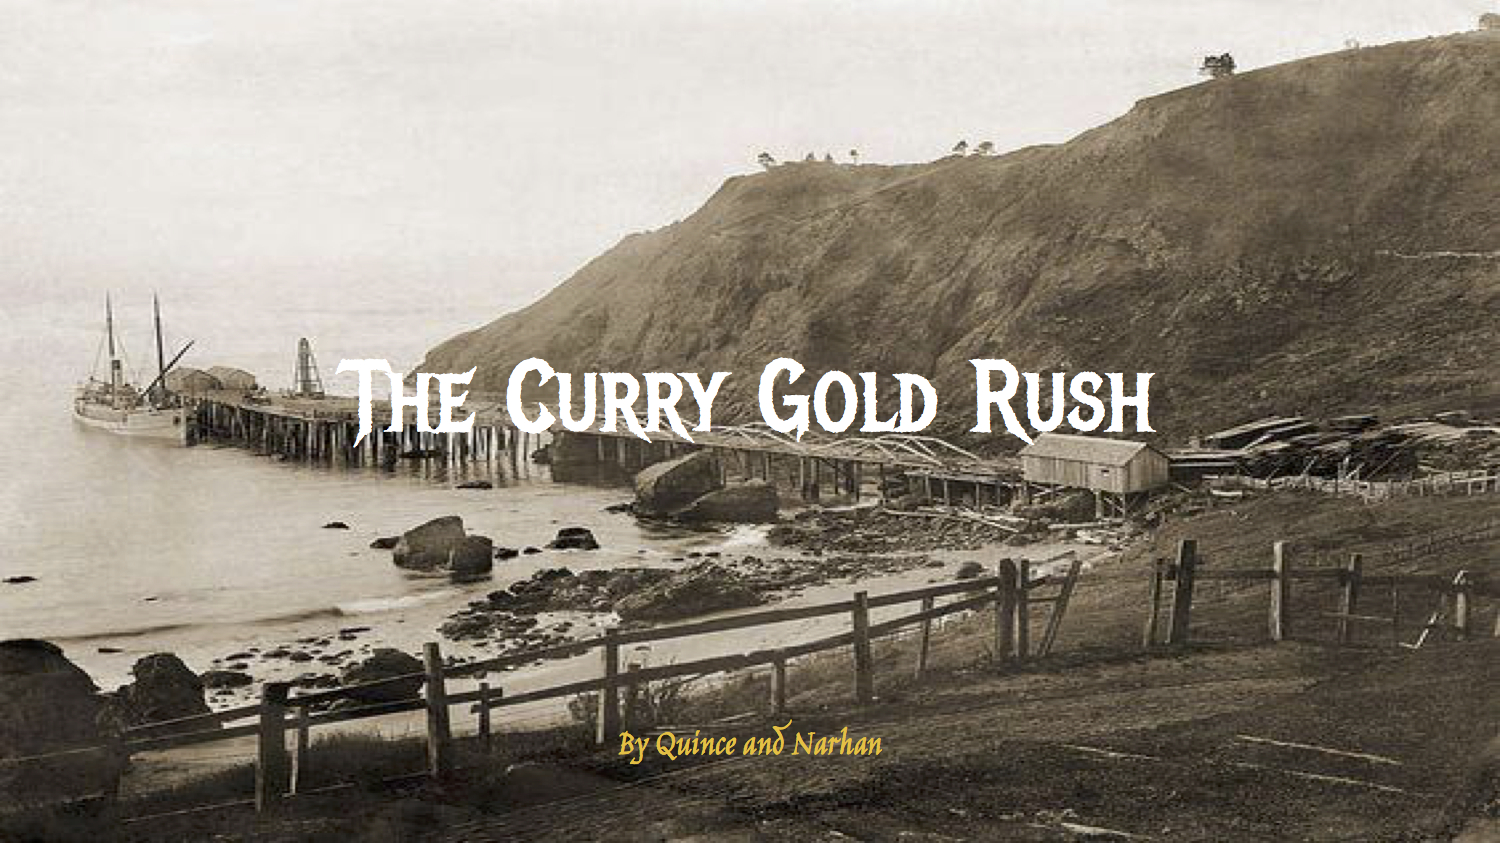 The Curry County Gold Rush